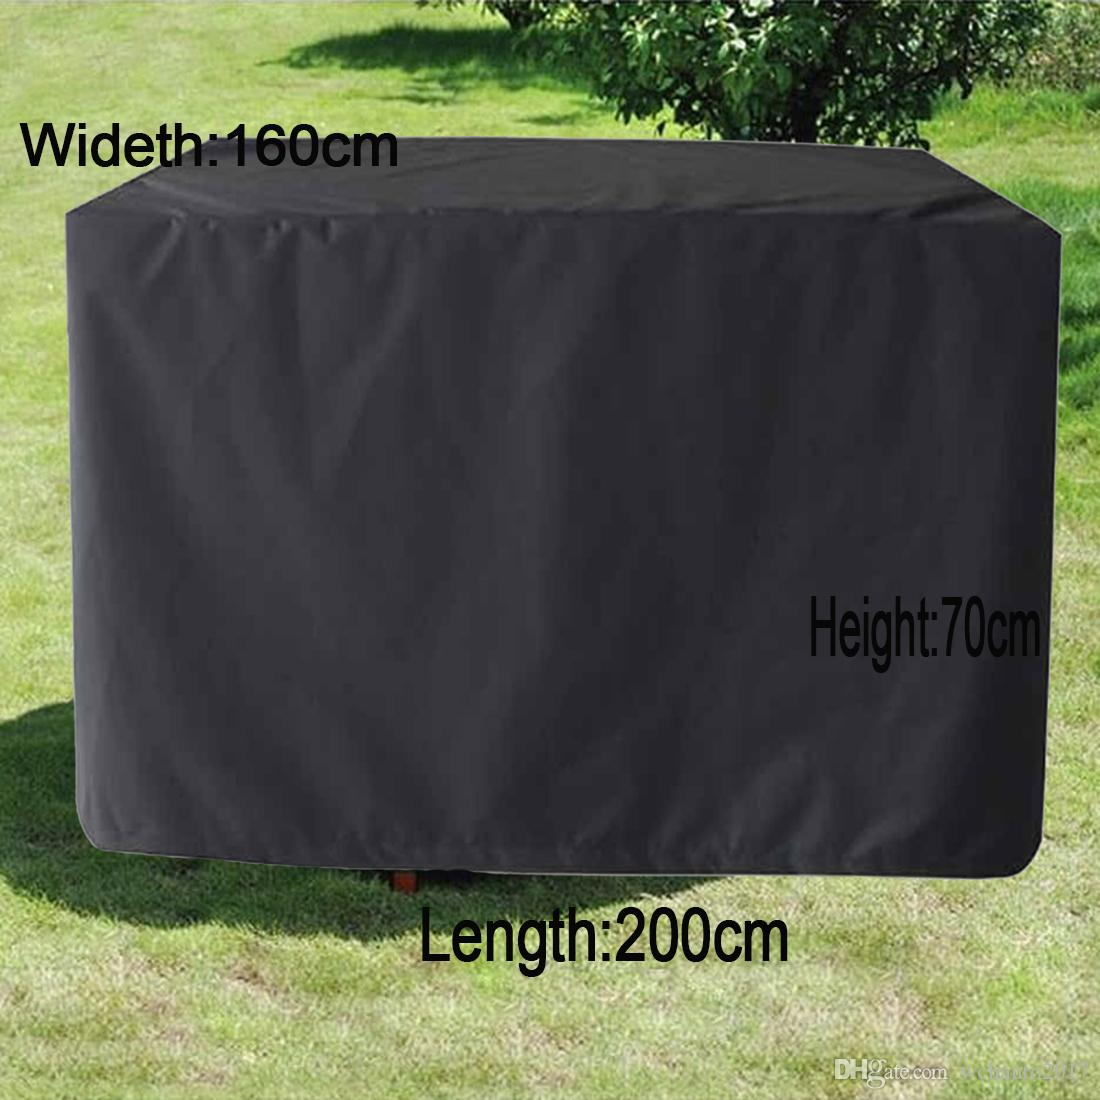 2018 200x160x70cm Patio Table Cover Square Waterproof Black Outdoor